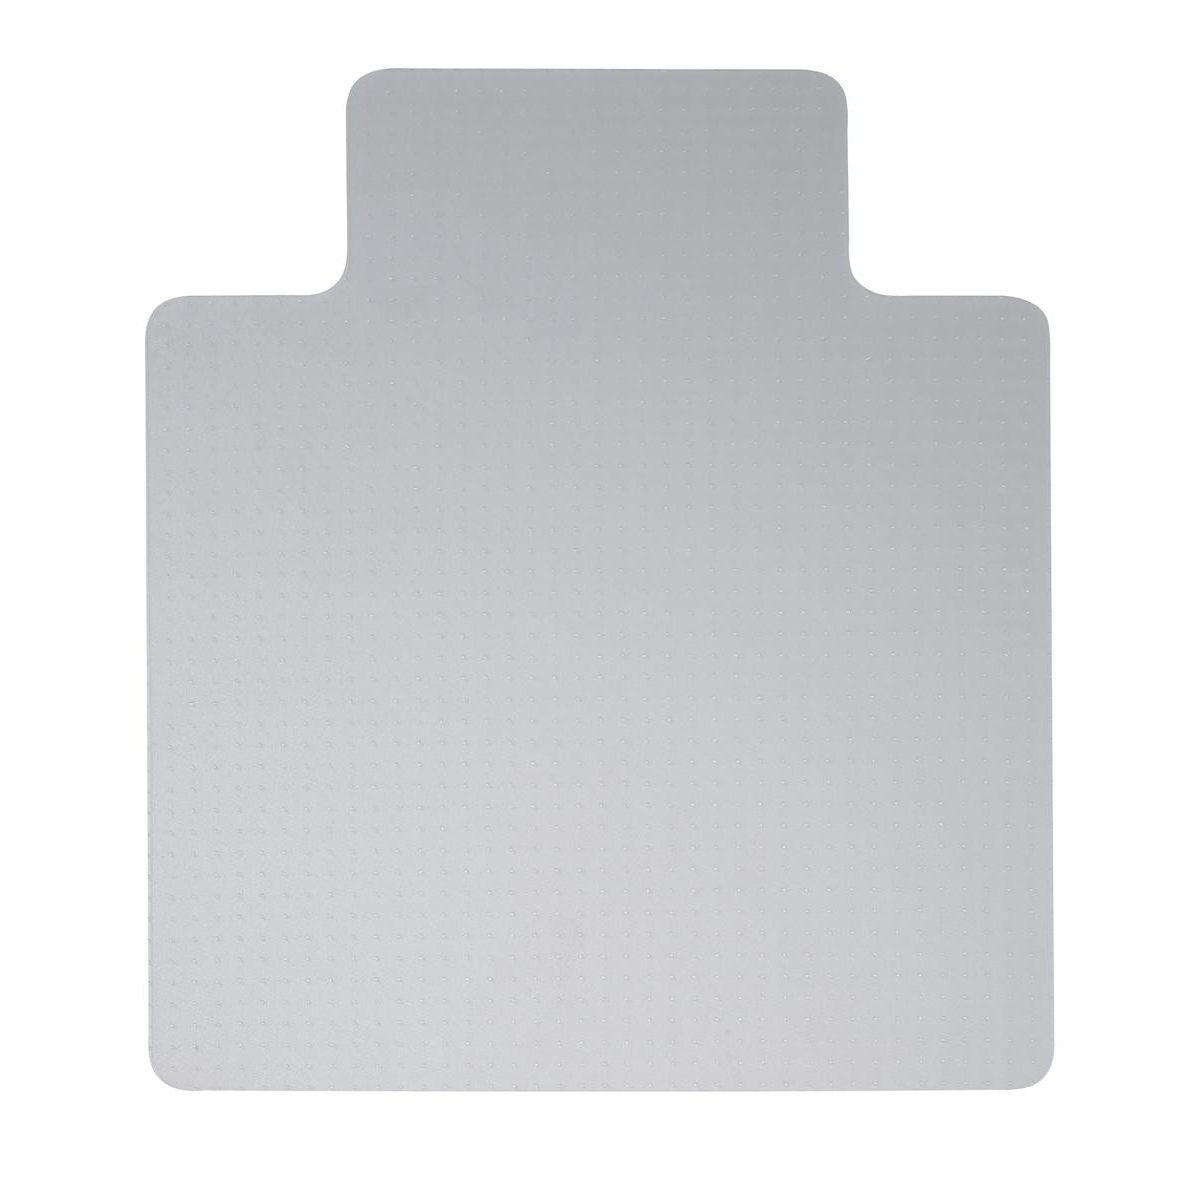 For Hard Floors 5 Star Office Chair Mat For Hard Floors PVC Lipped 1150x1340mm Clear/Transparent